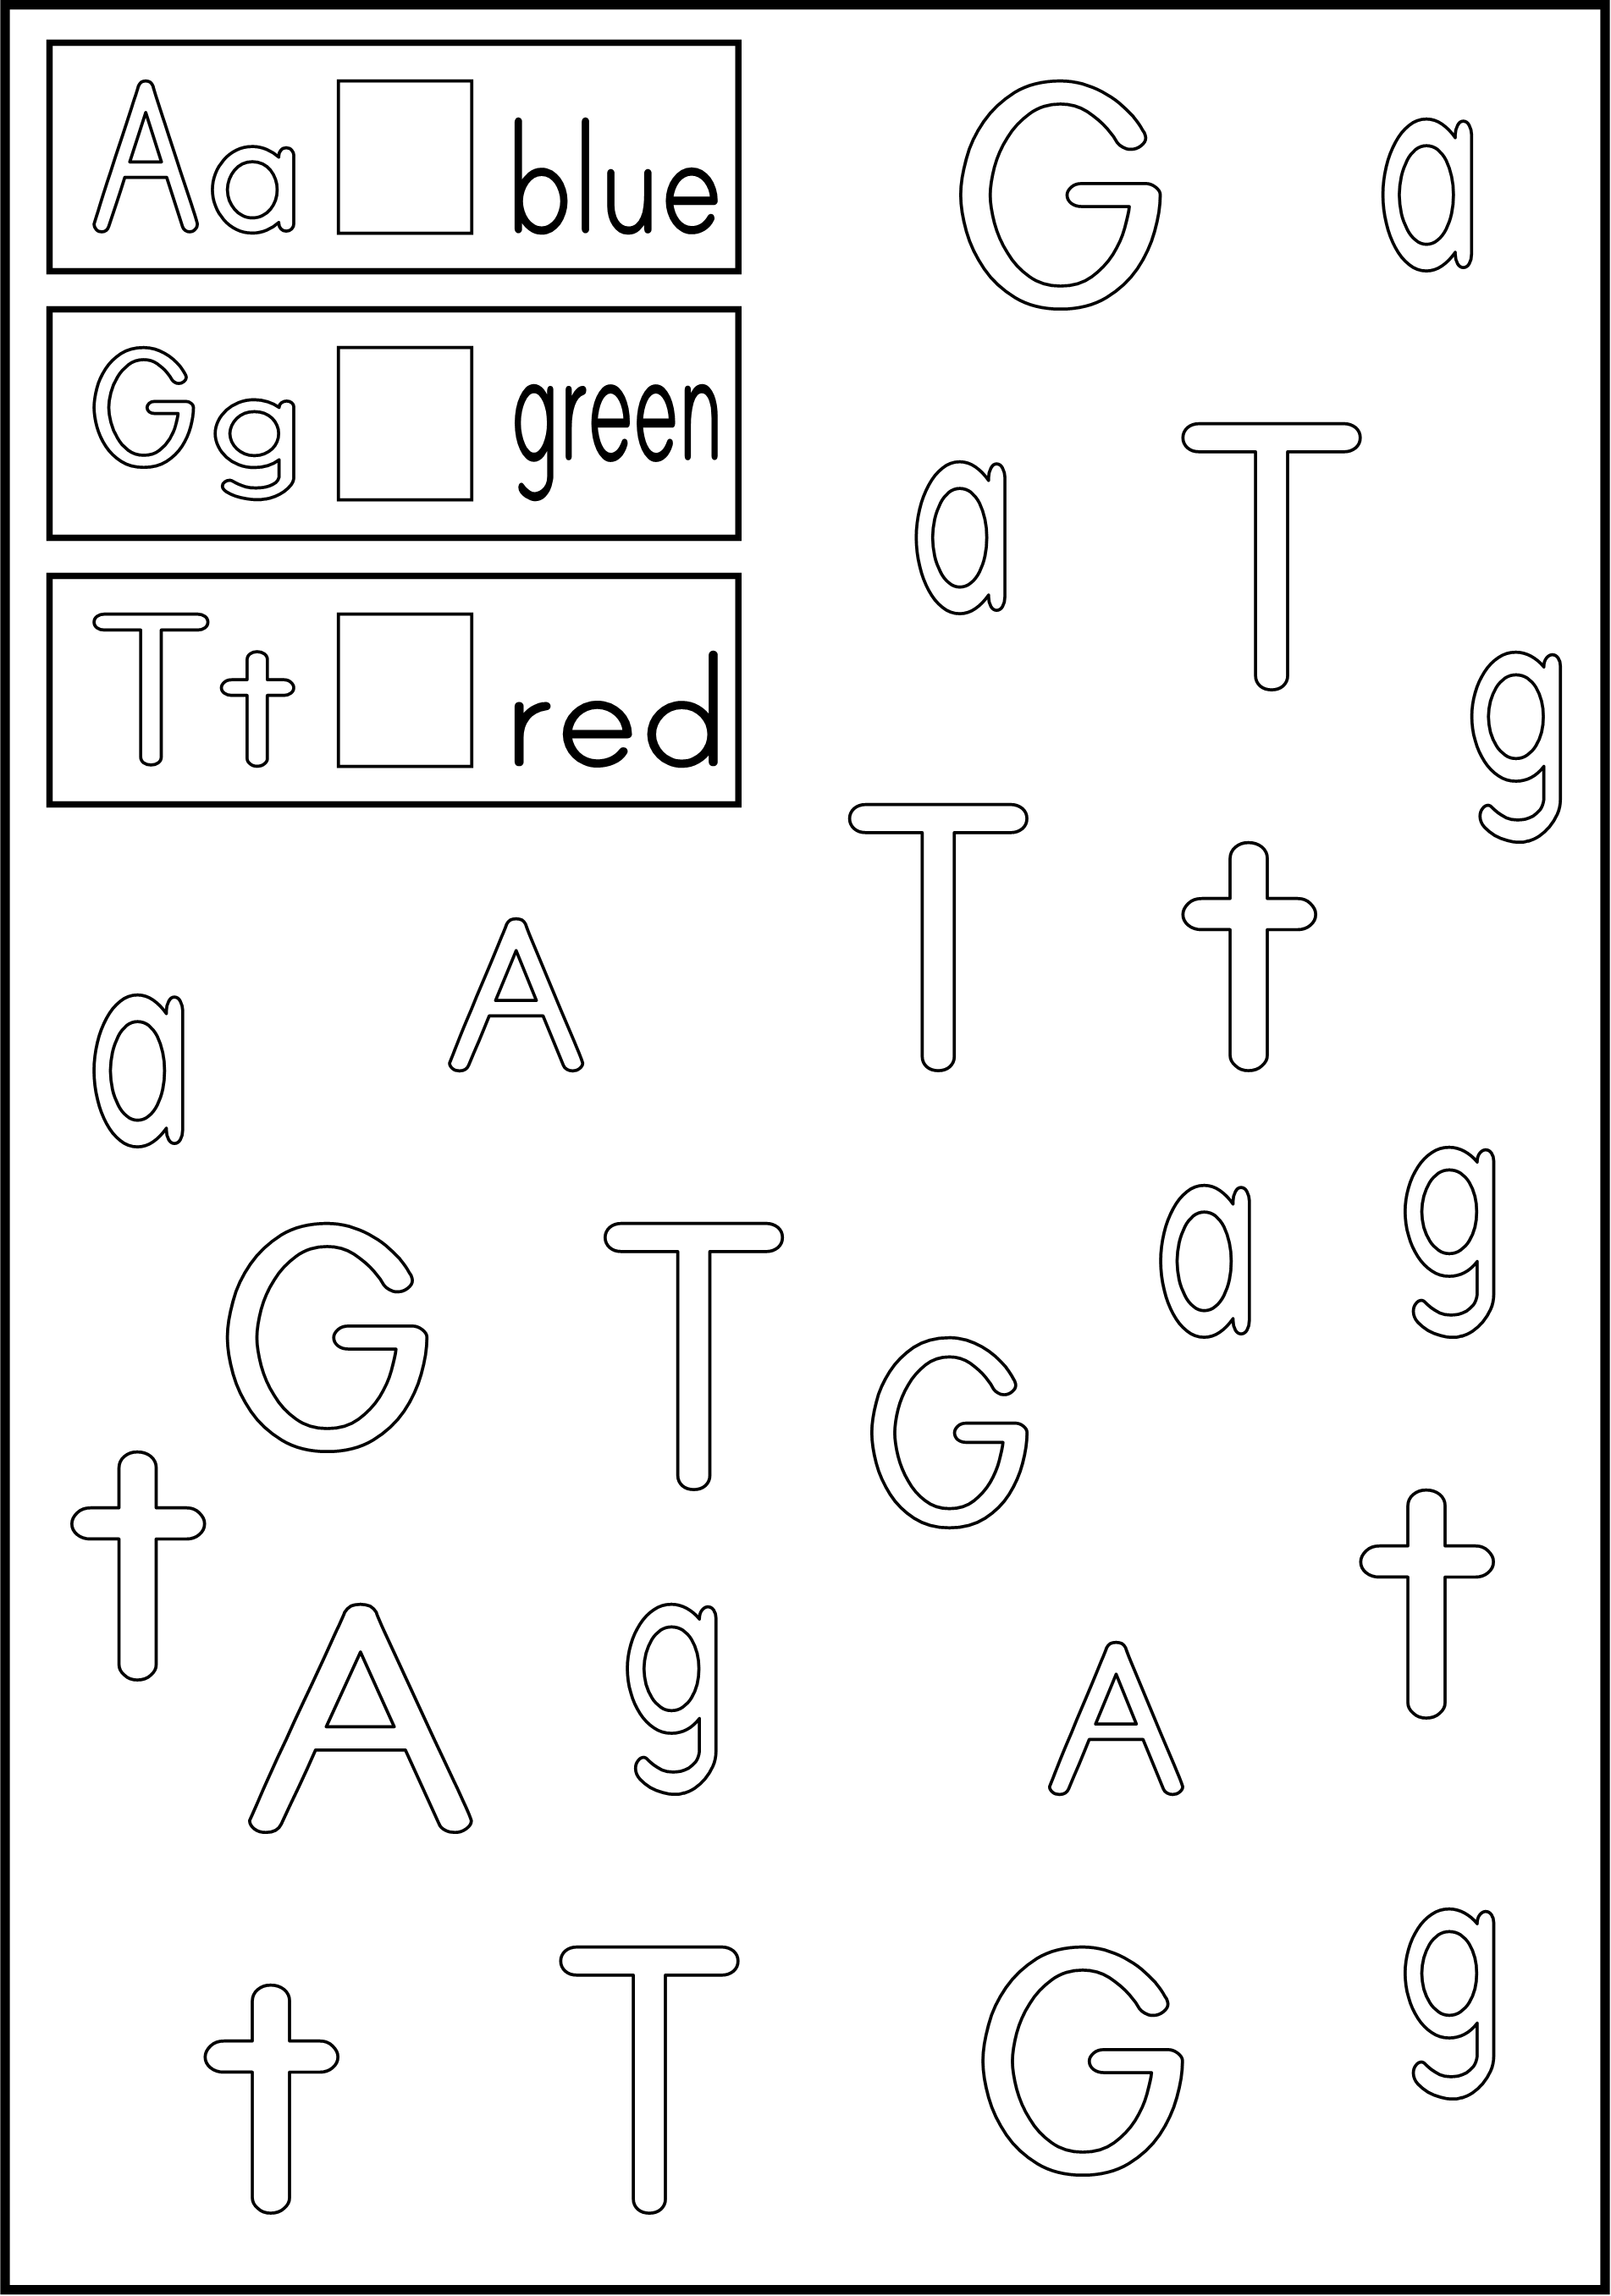 Various Alphabet Worksheets I Like That It Mixes Different Letters Instead Of Just One At A